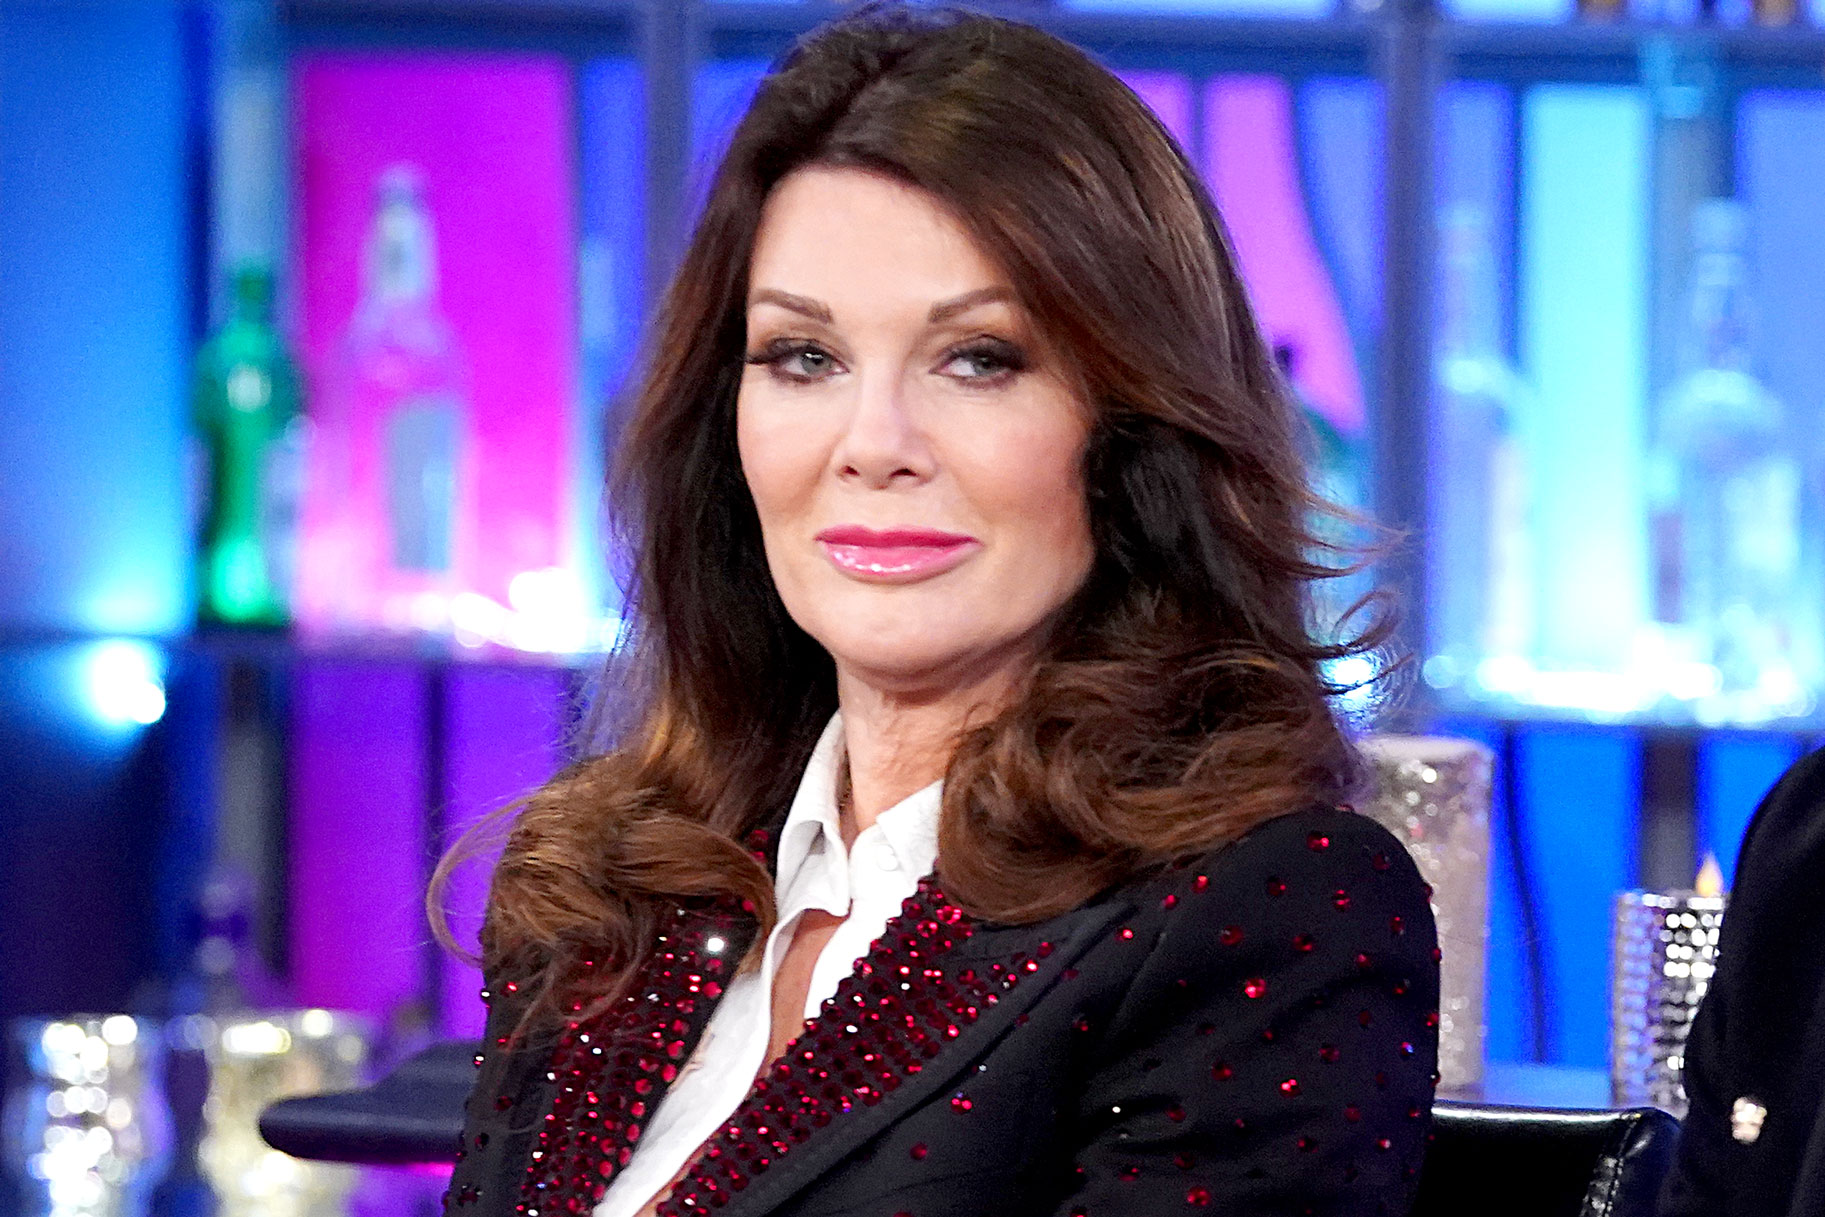 Lisa Vanderpump on Lie Detector Test